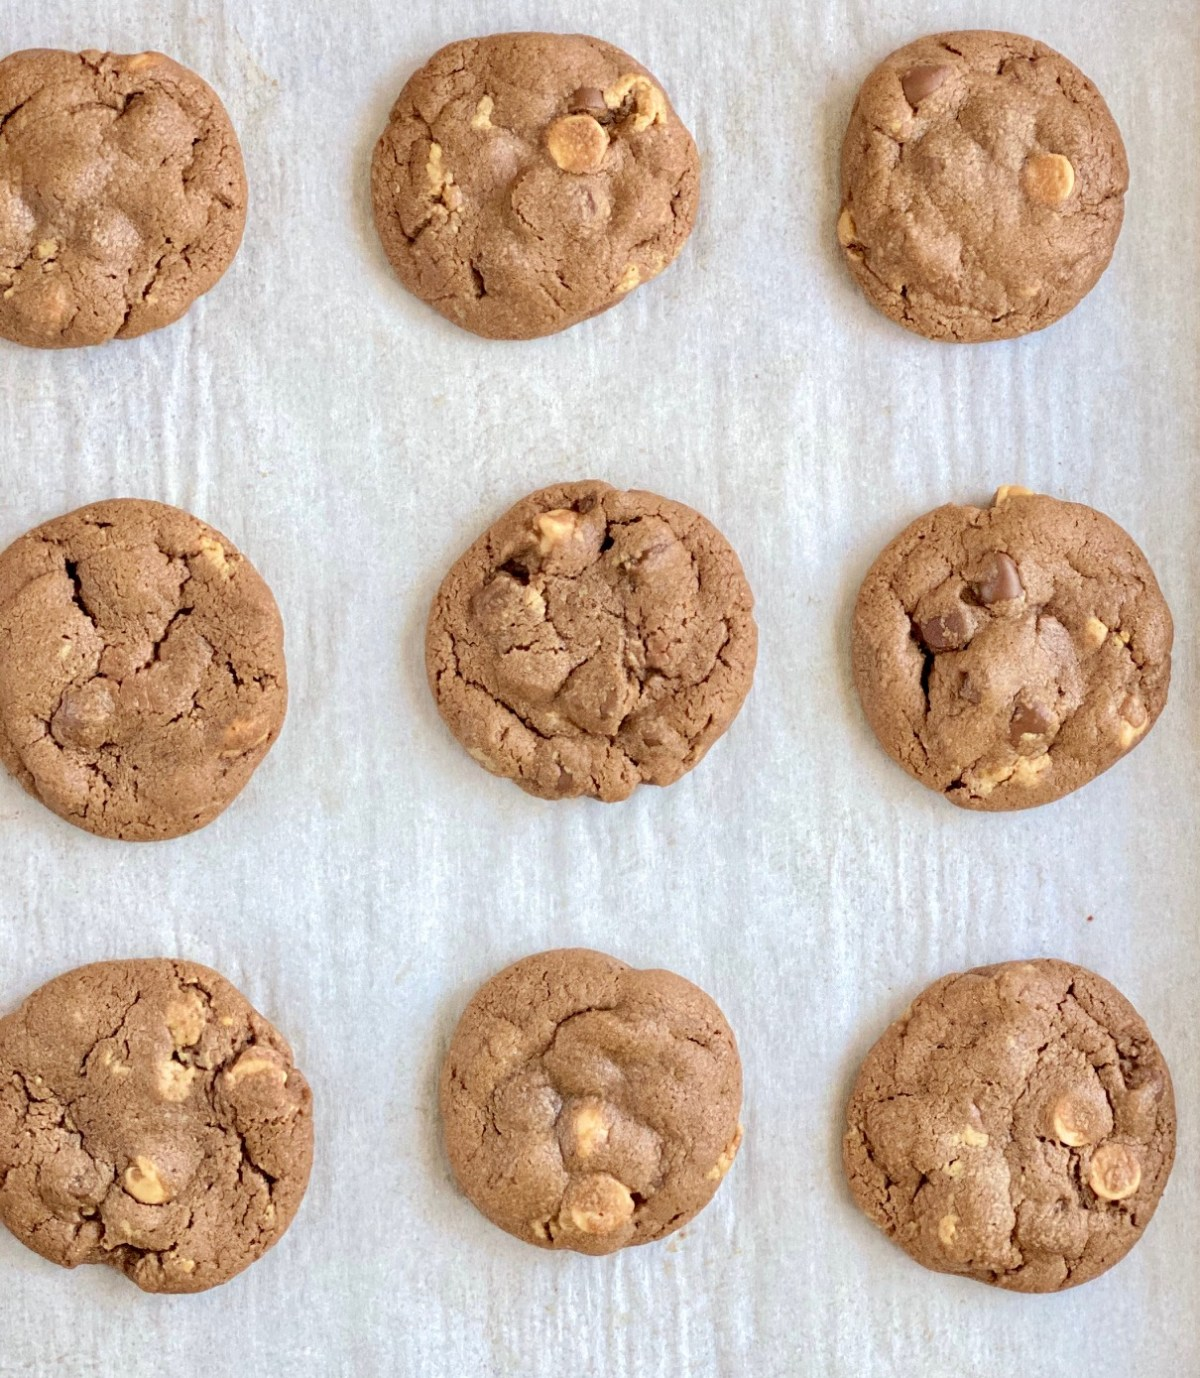 Chocolate Peanut Butter Cup Cookies fresh out of the oven. #chocolatepeanutbuttercupcookies #peanutbuttercupcookies #cookierecipes #christmascookies #bestchristmascookies #christmascookierecipes #peanutbuttercuprecipes